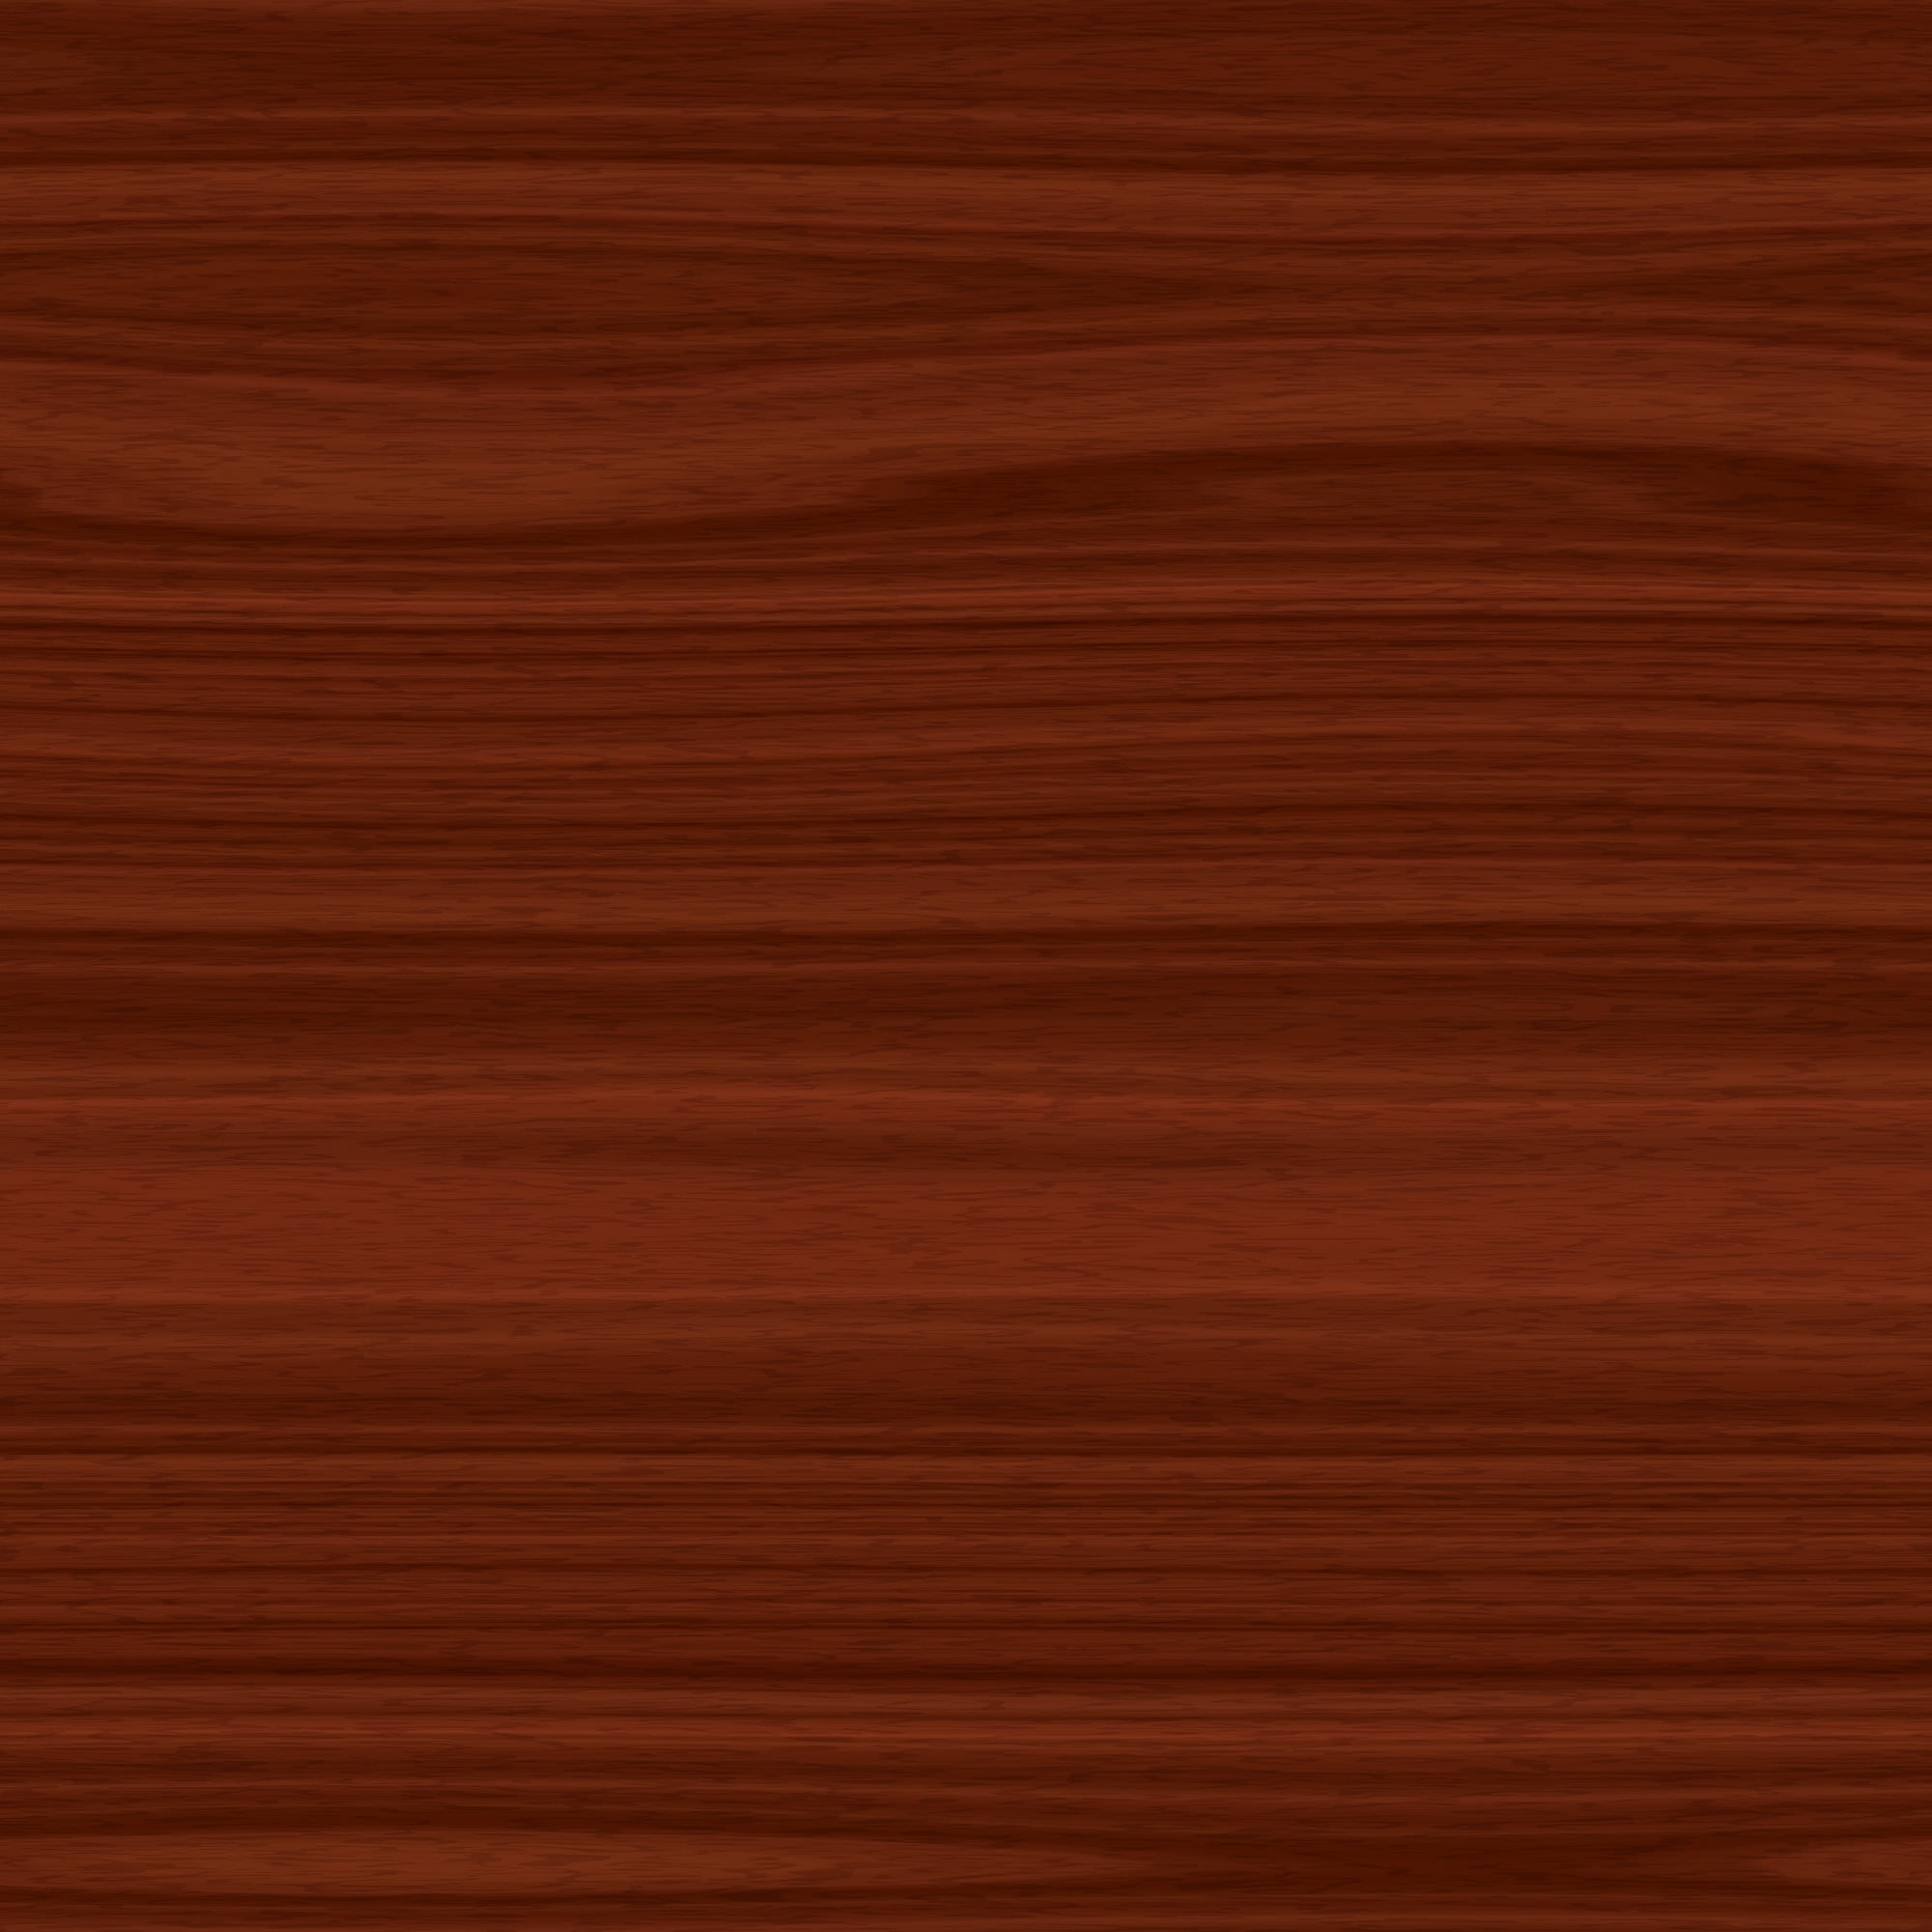 Red Seamless Wood Texture for Photoshop